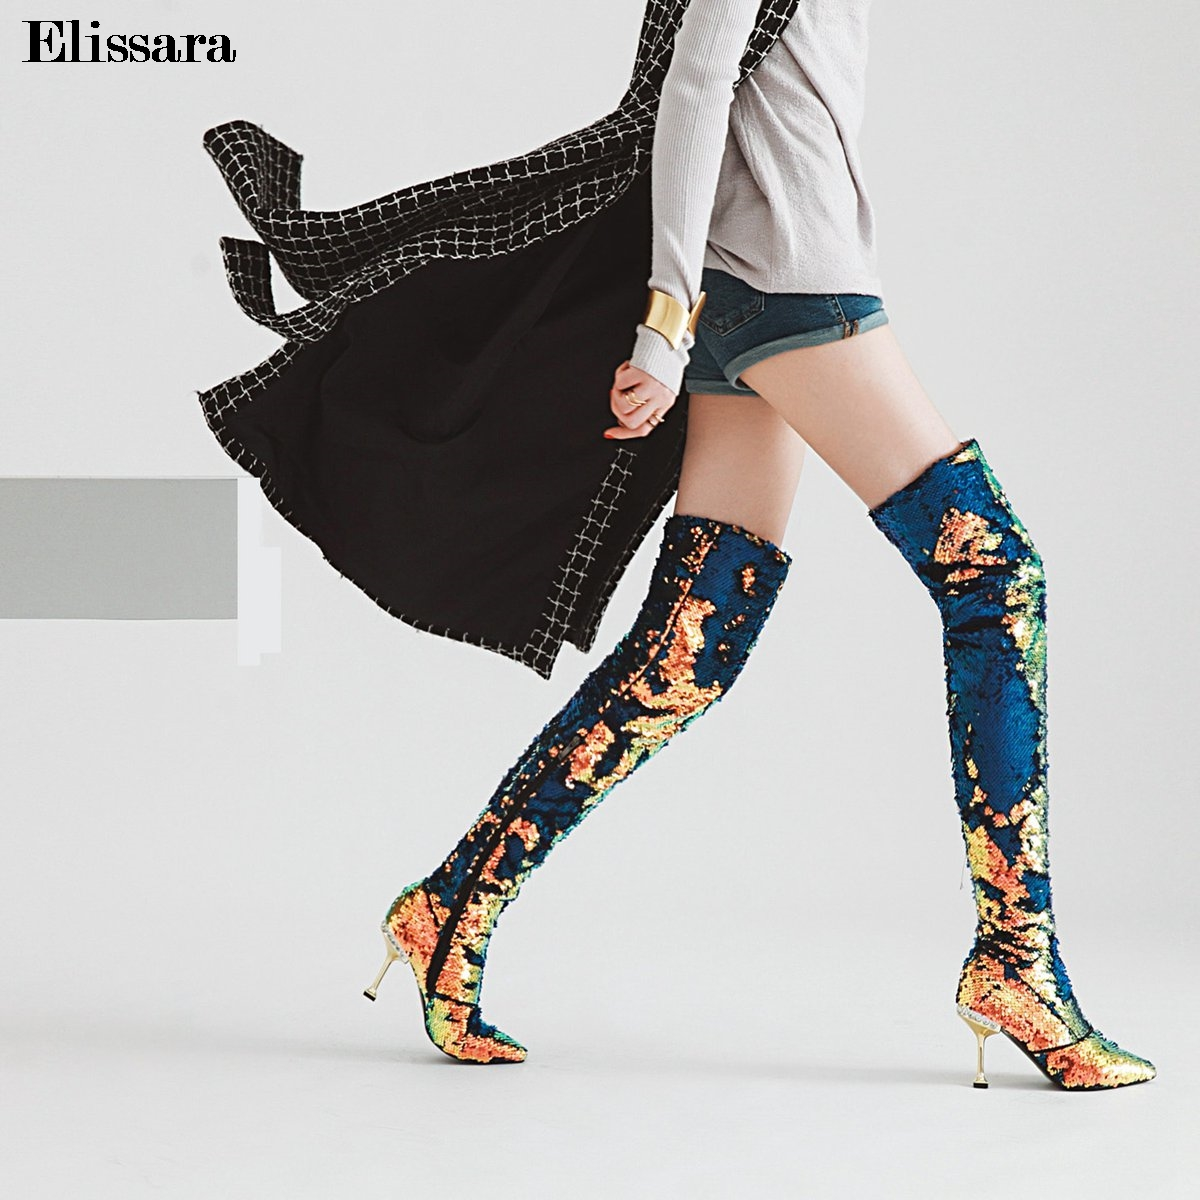 Women High Heels Thigh High Boots Shoes Woman Glitter Bling Gradual Change Color Zip Pointed Toe Boots Shoes Size 33-43 Elissara elissara women ankle boots women high heels boots ladies zip high quality denim pointed toe shoes plus size 33 43